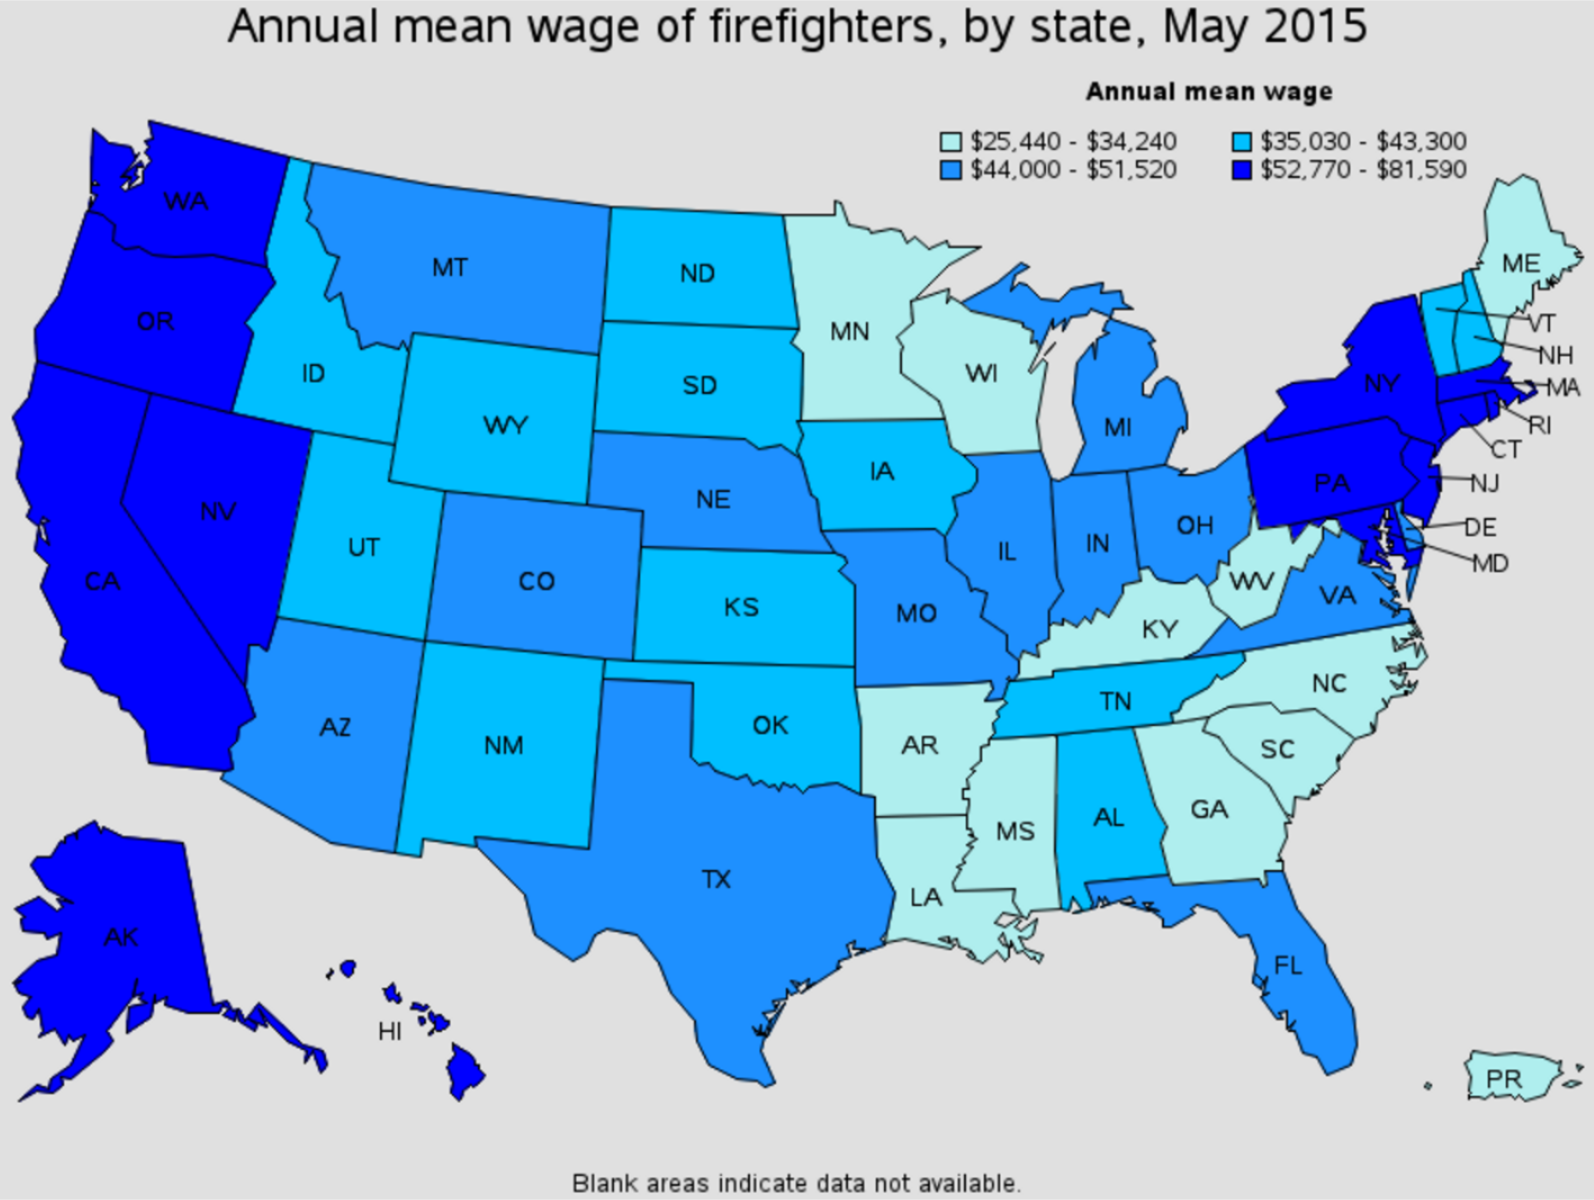 firefighter average salary by state Smithville Texas